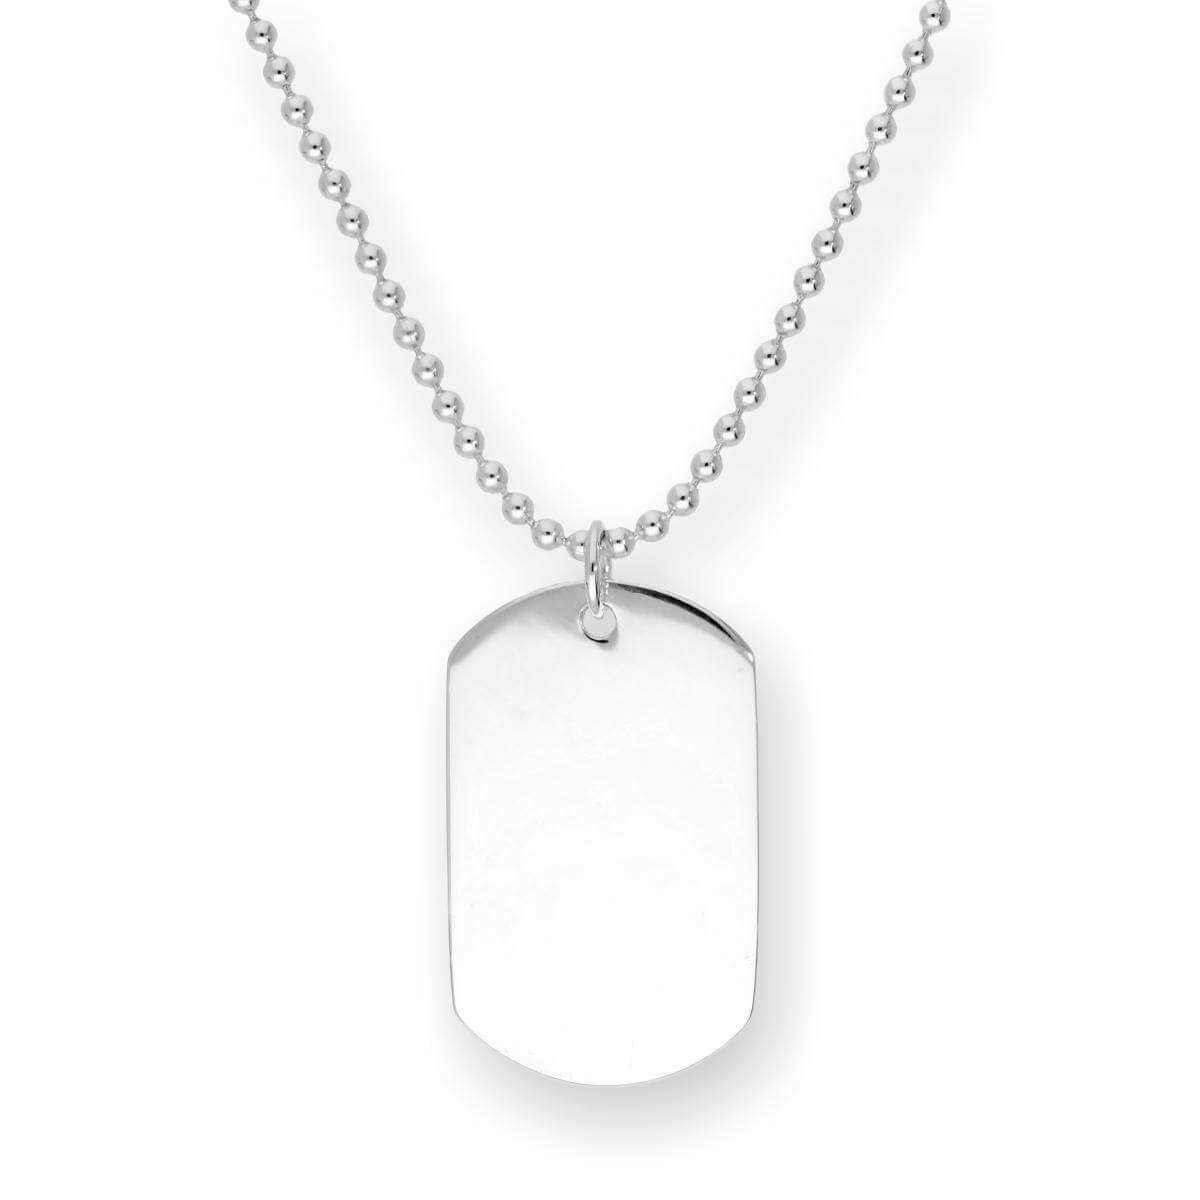 Sterling Silver Engravable Large Dog Tag Pendant on Chain 14 - 22 Inches